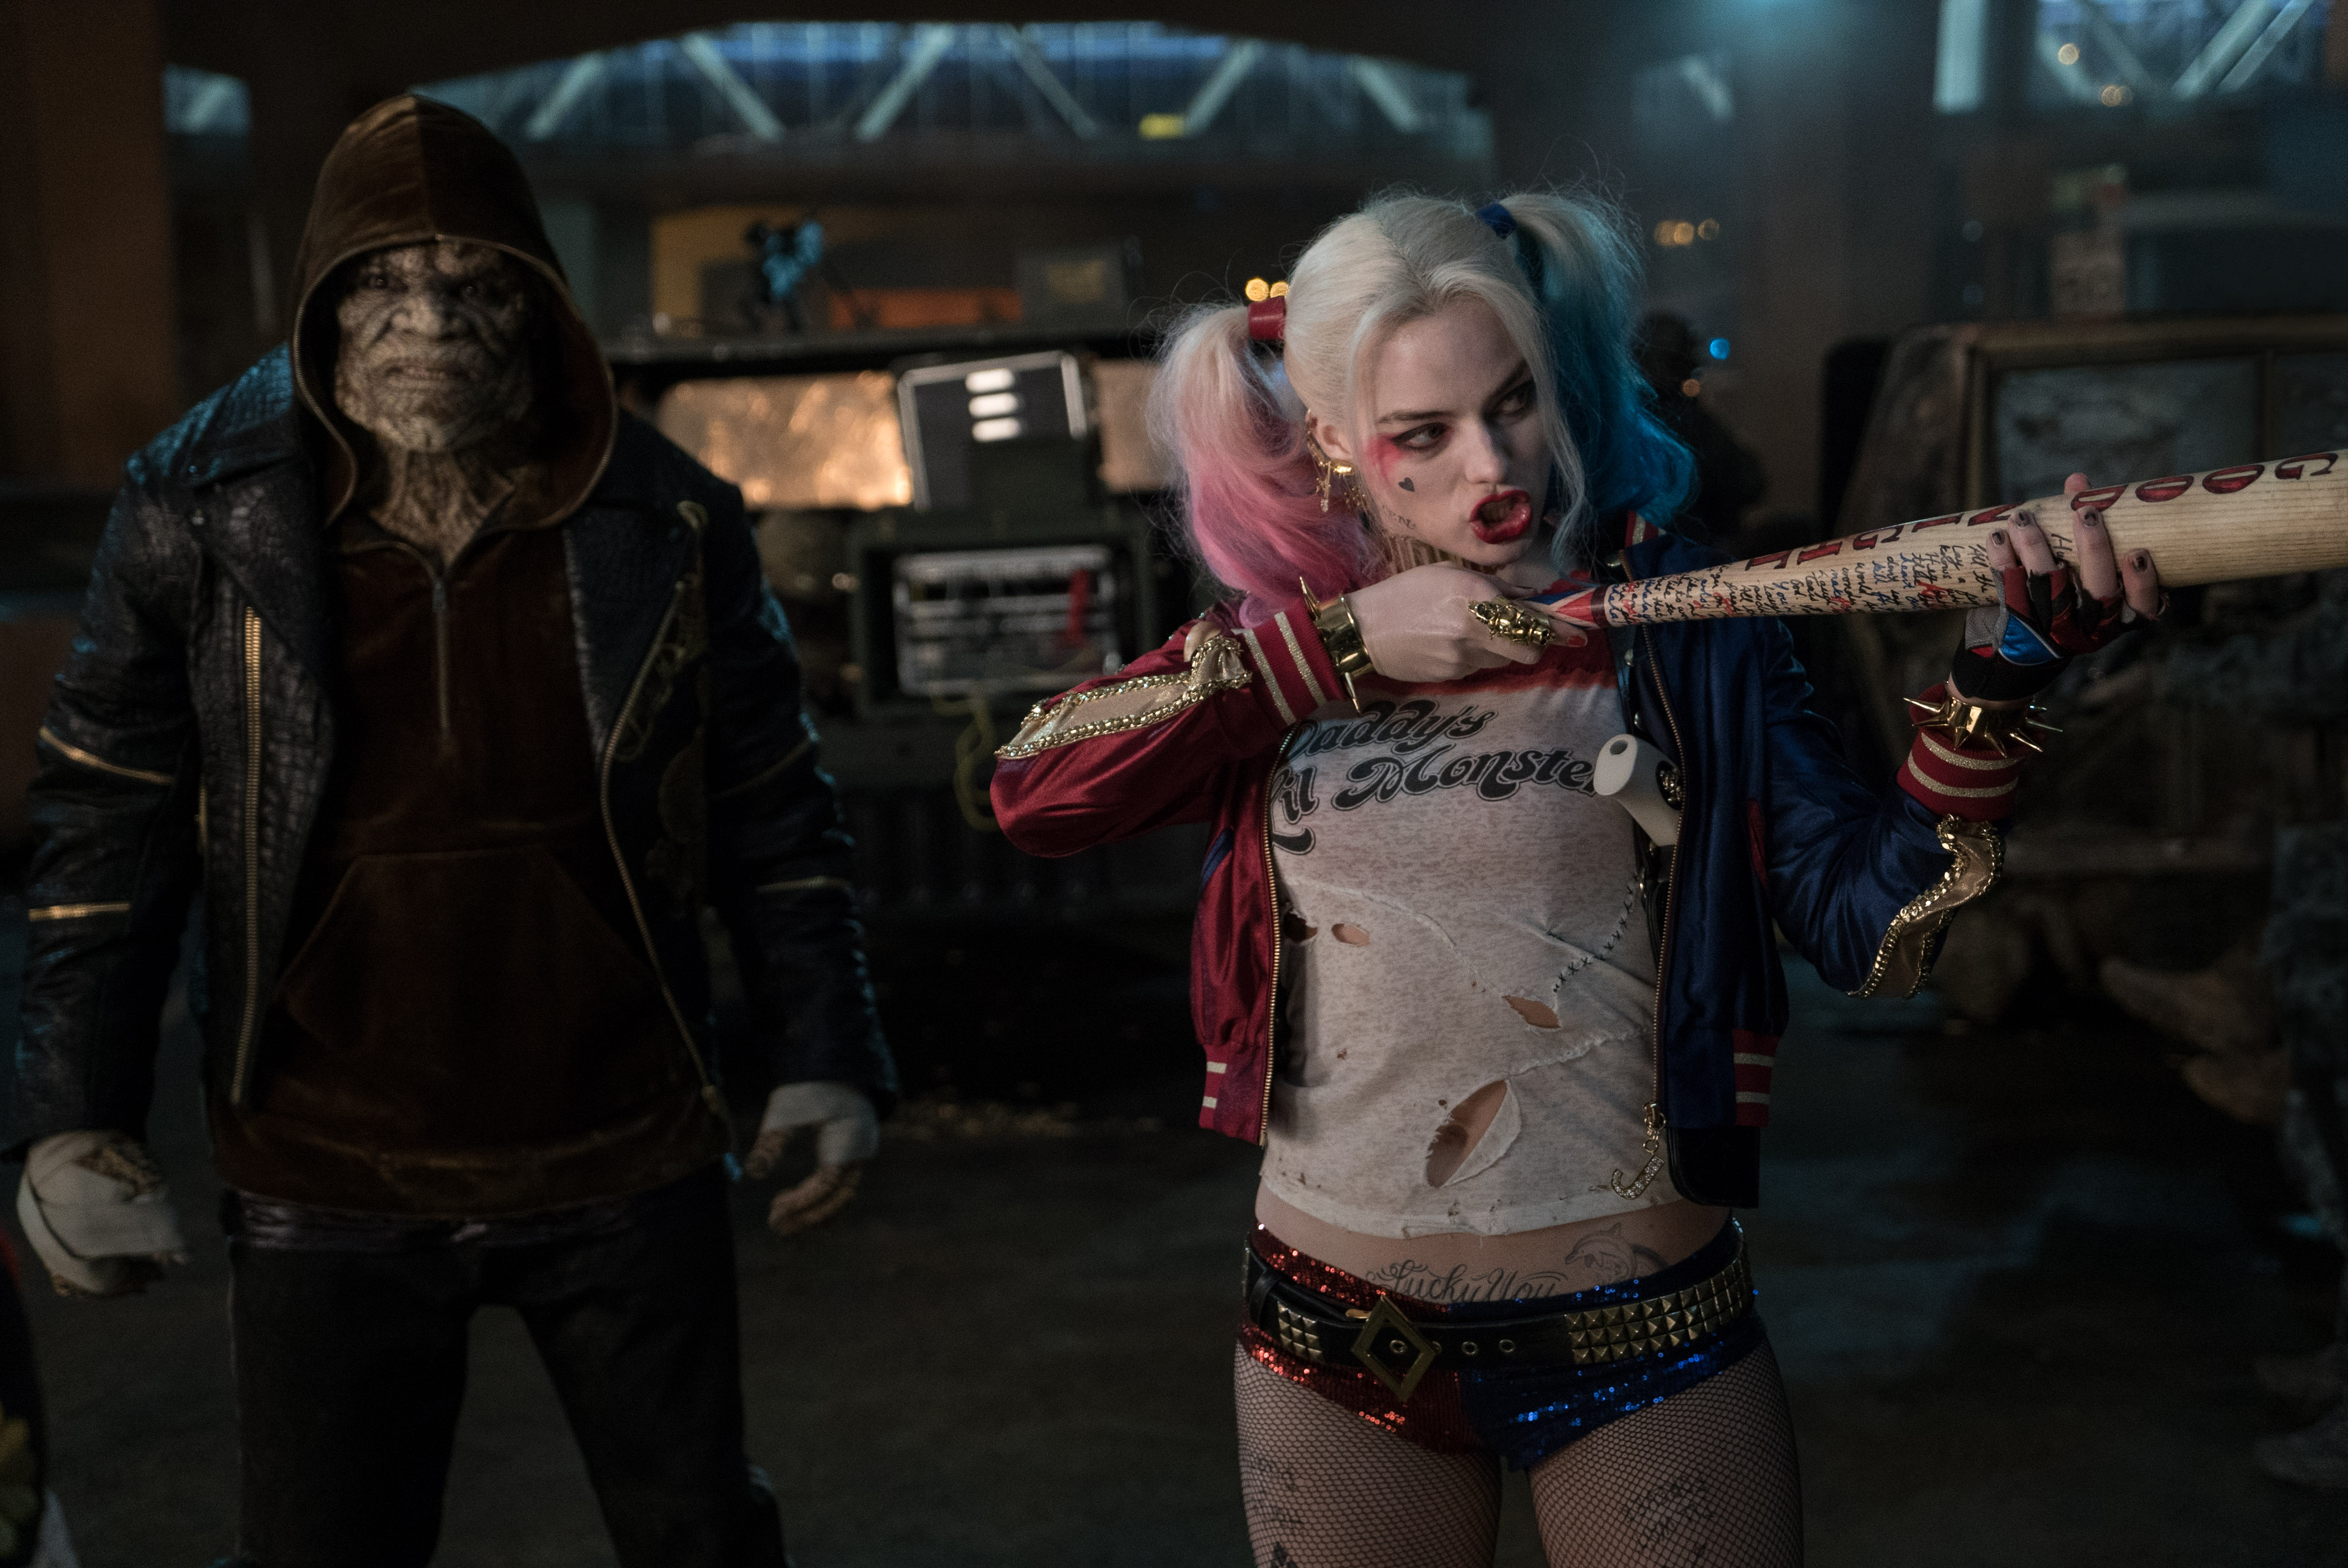 Suicide Squad: Unconventional heroes, conventionally